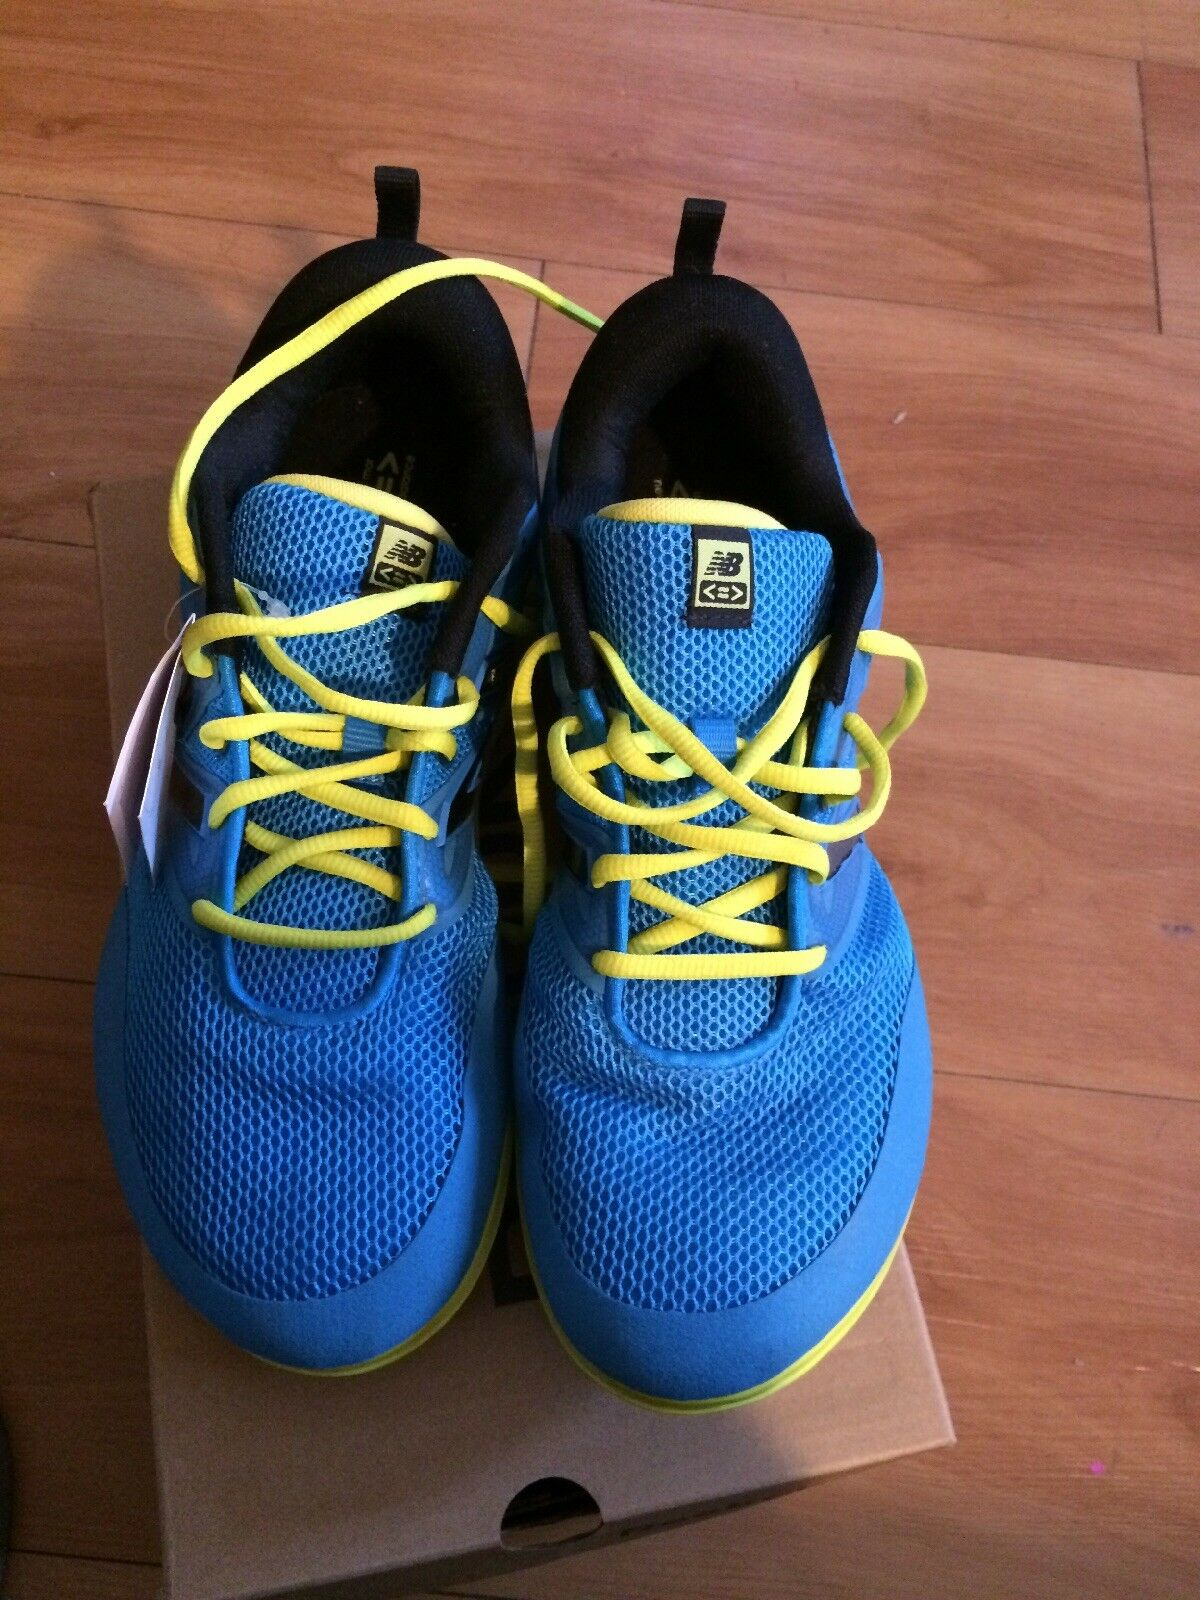 New  Mens New Balance sneakers size 10.5 excellent condition